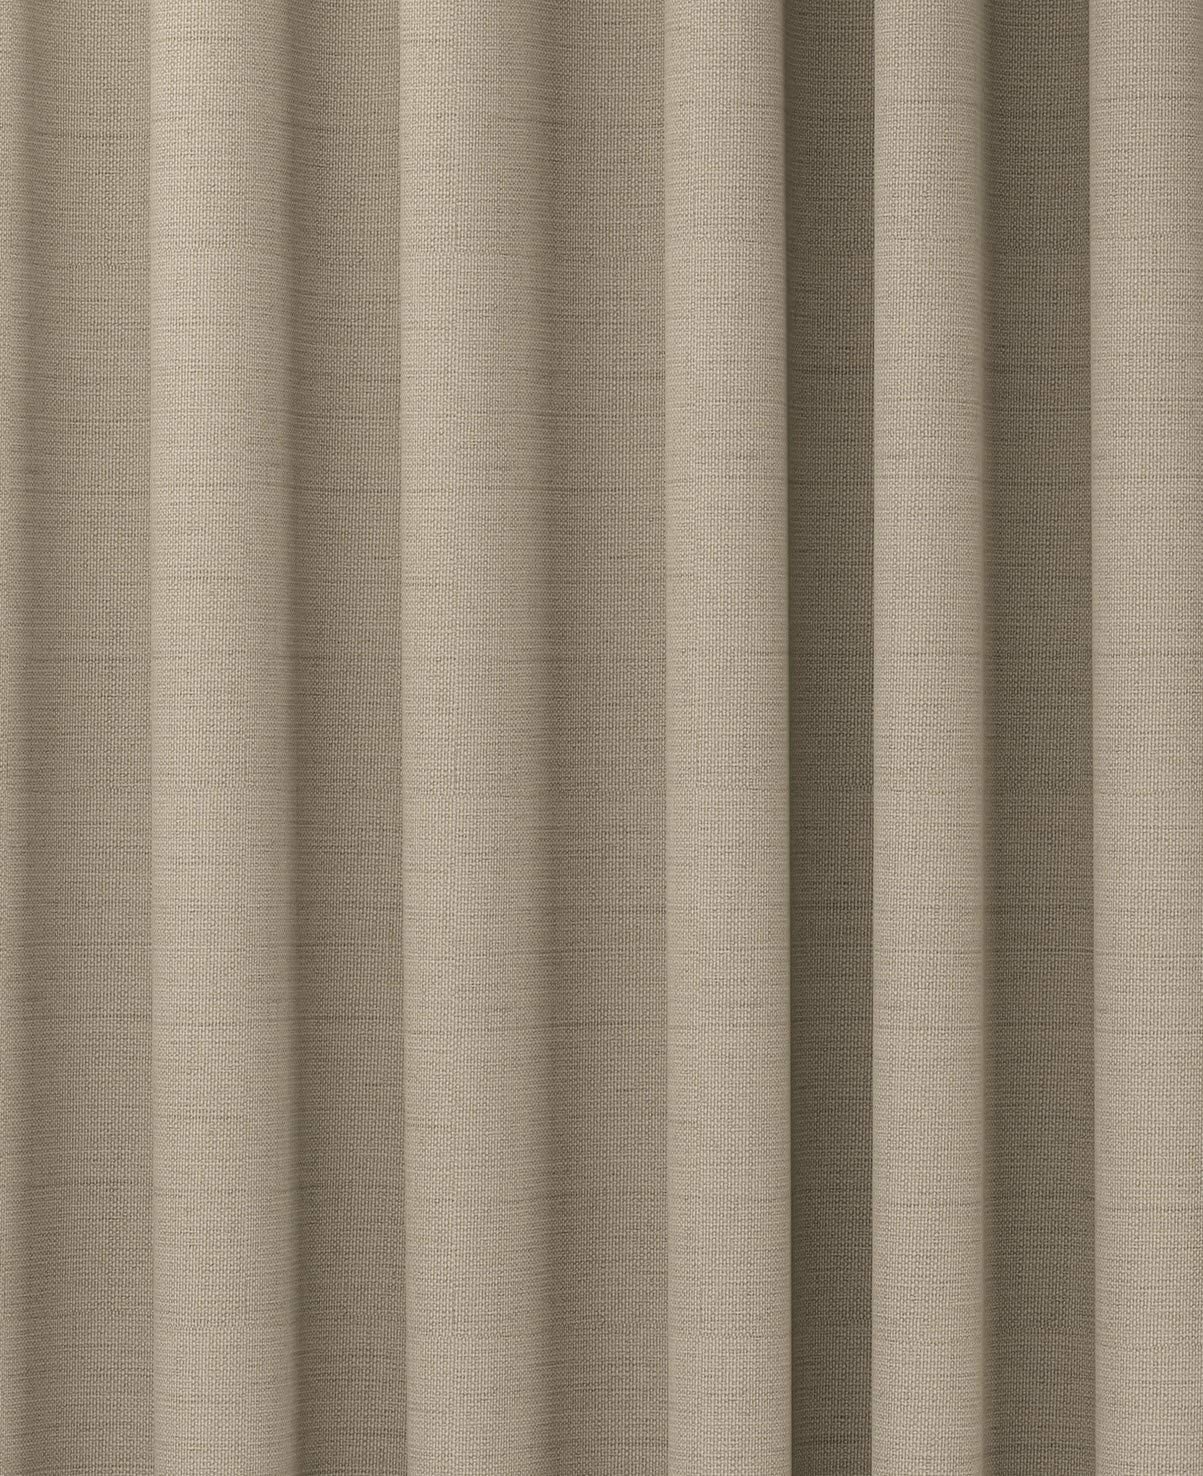 I bought their curtains with brand Stanley Hamilton, its looking perfect and the quality of the curtain is amazing.